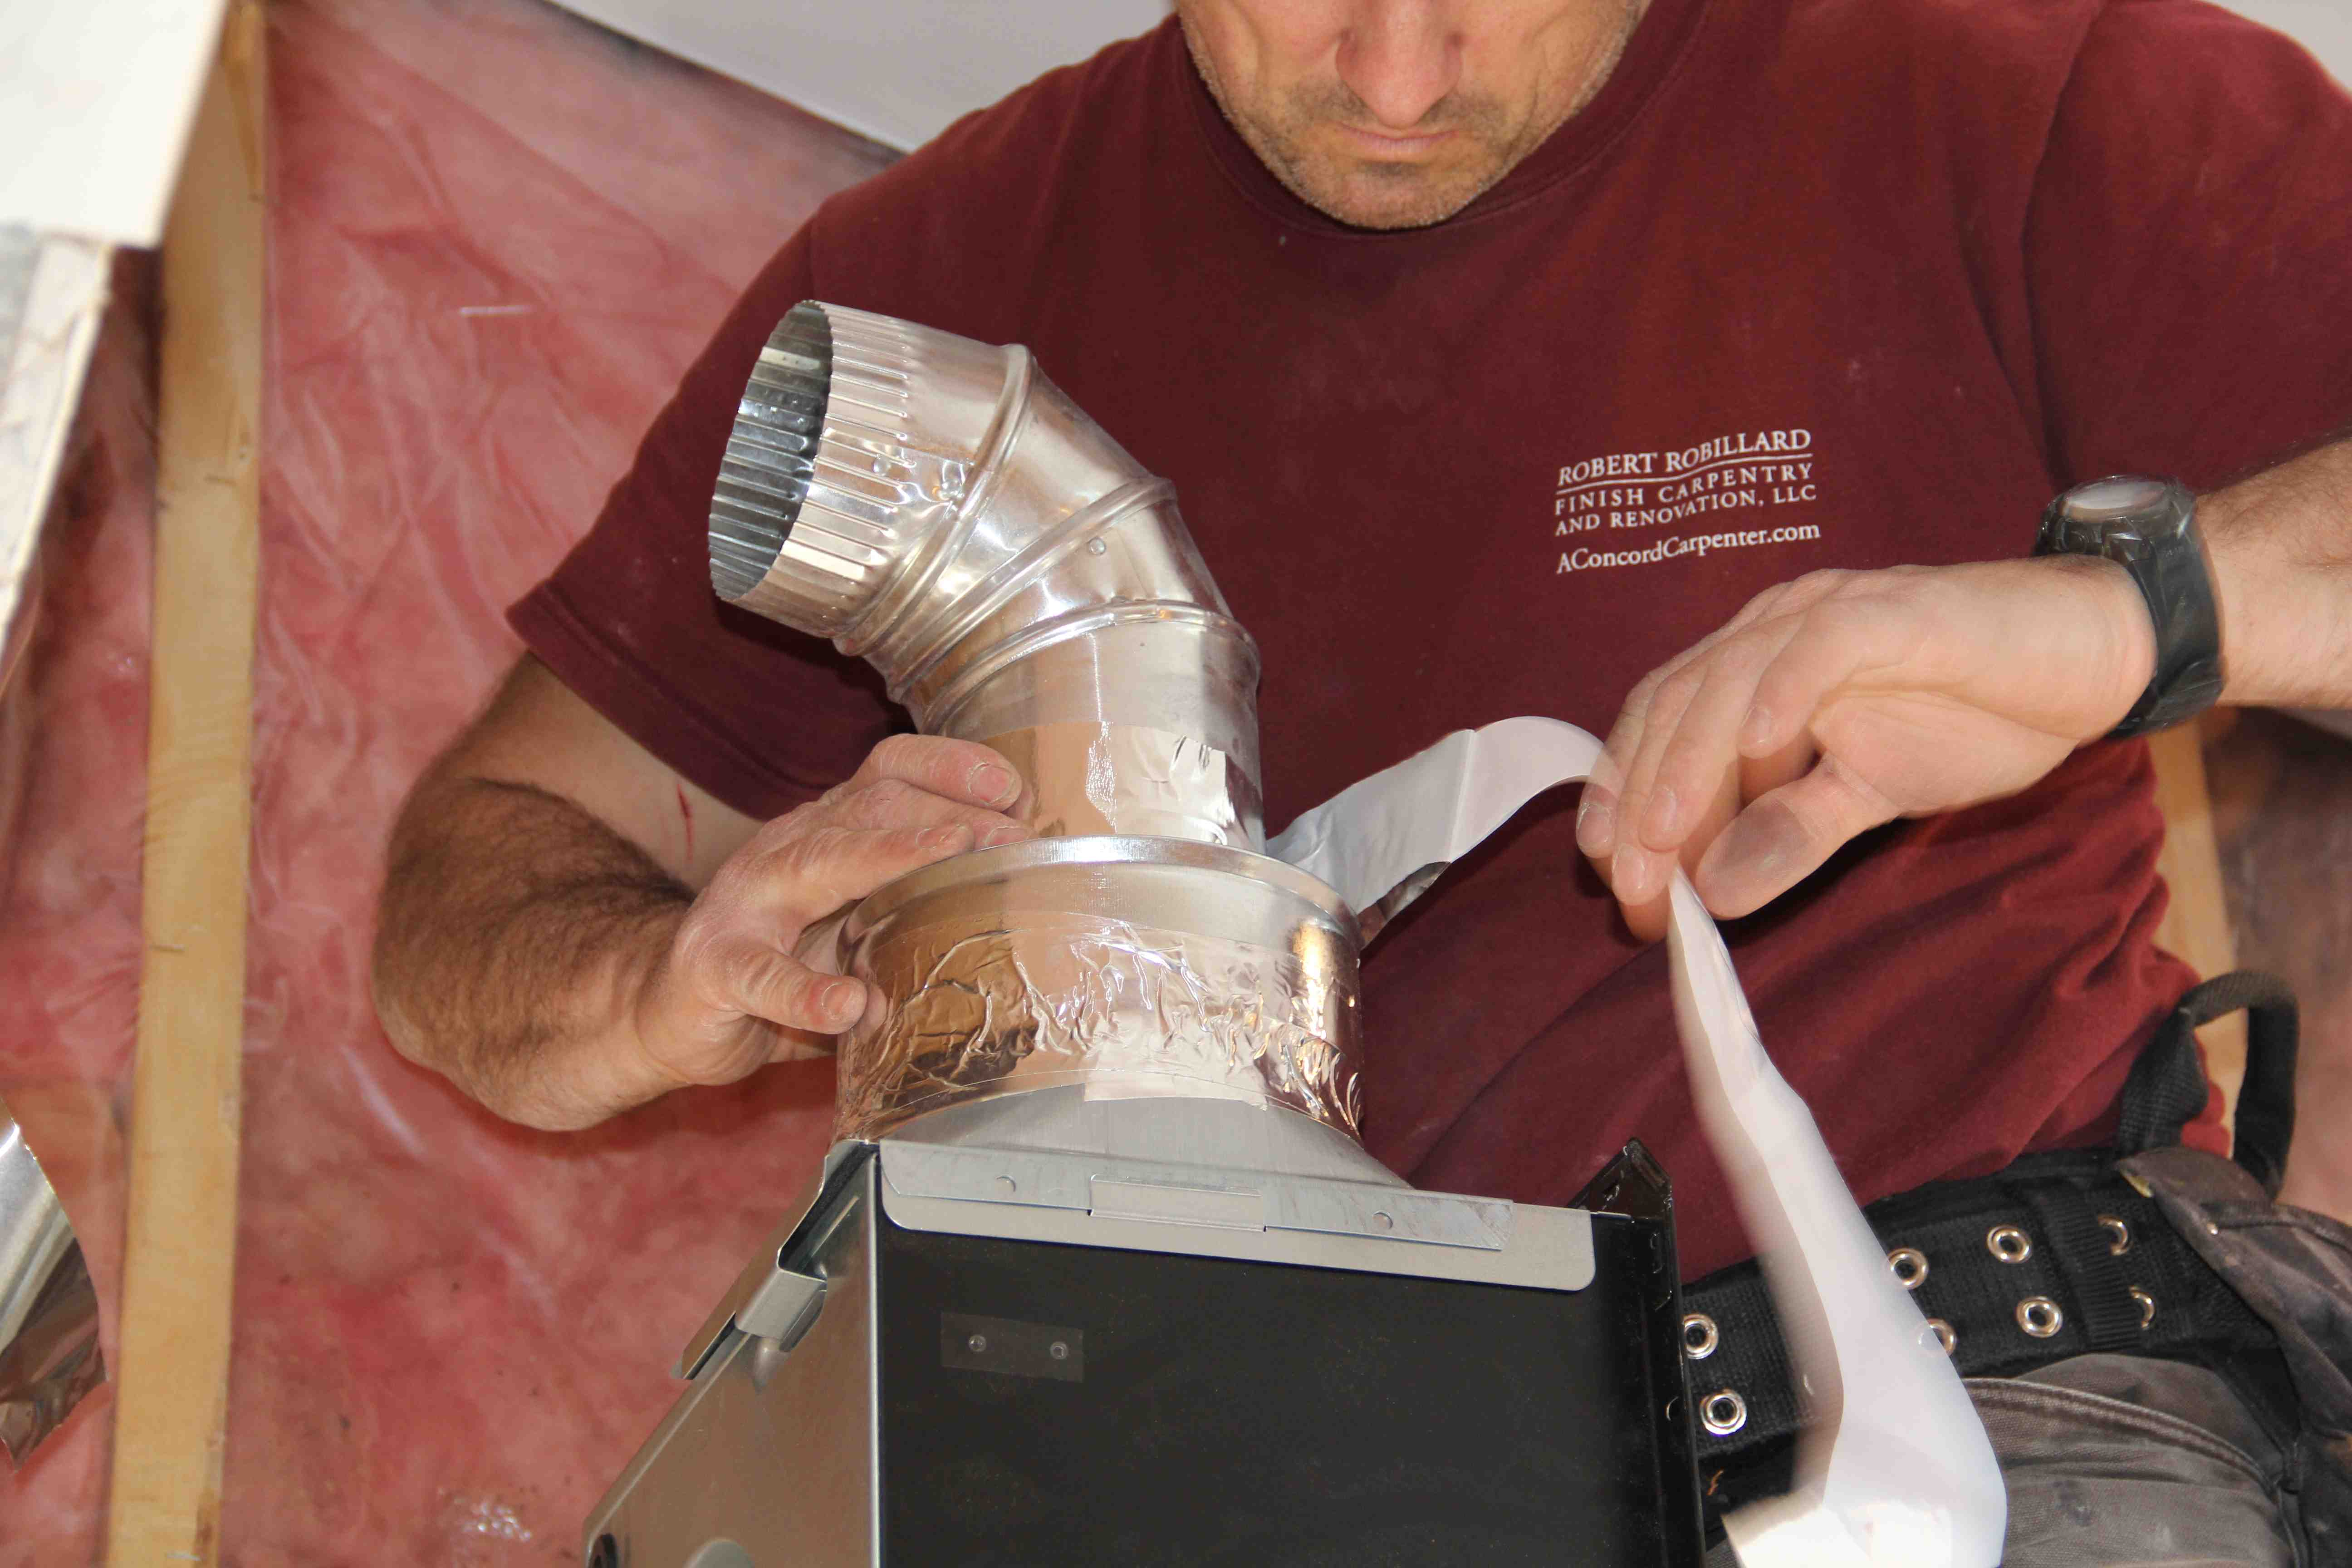 Installing A Bathroom Vent Duct A Concord Carpenter - Installing roof vent for bathroom exhaust fan